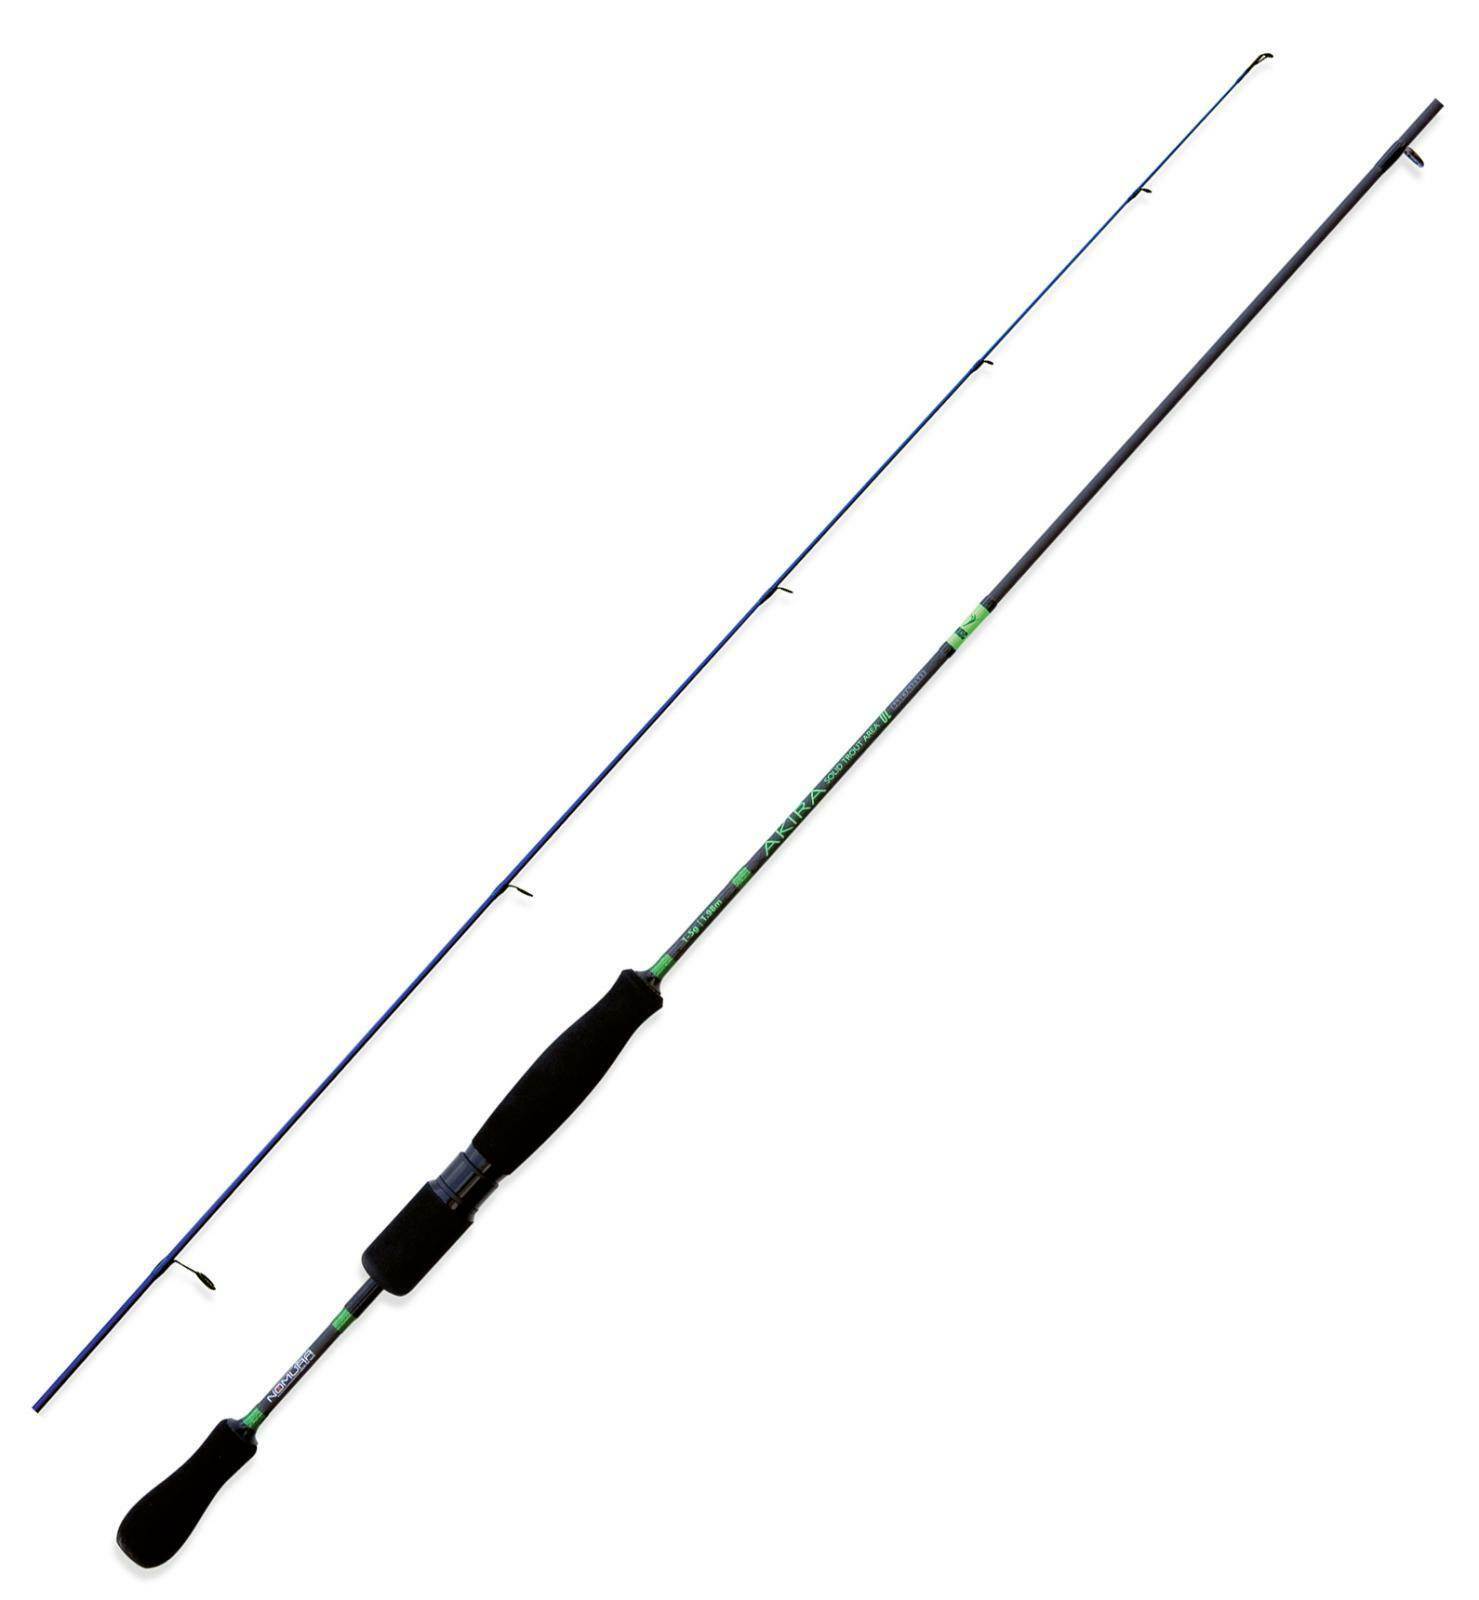 NM20530519 Nomura Canna pesca Trout Area Akira Solid 1,98cm 1-5 gr     RNG